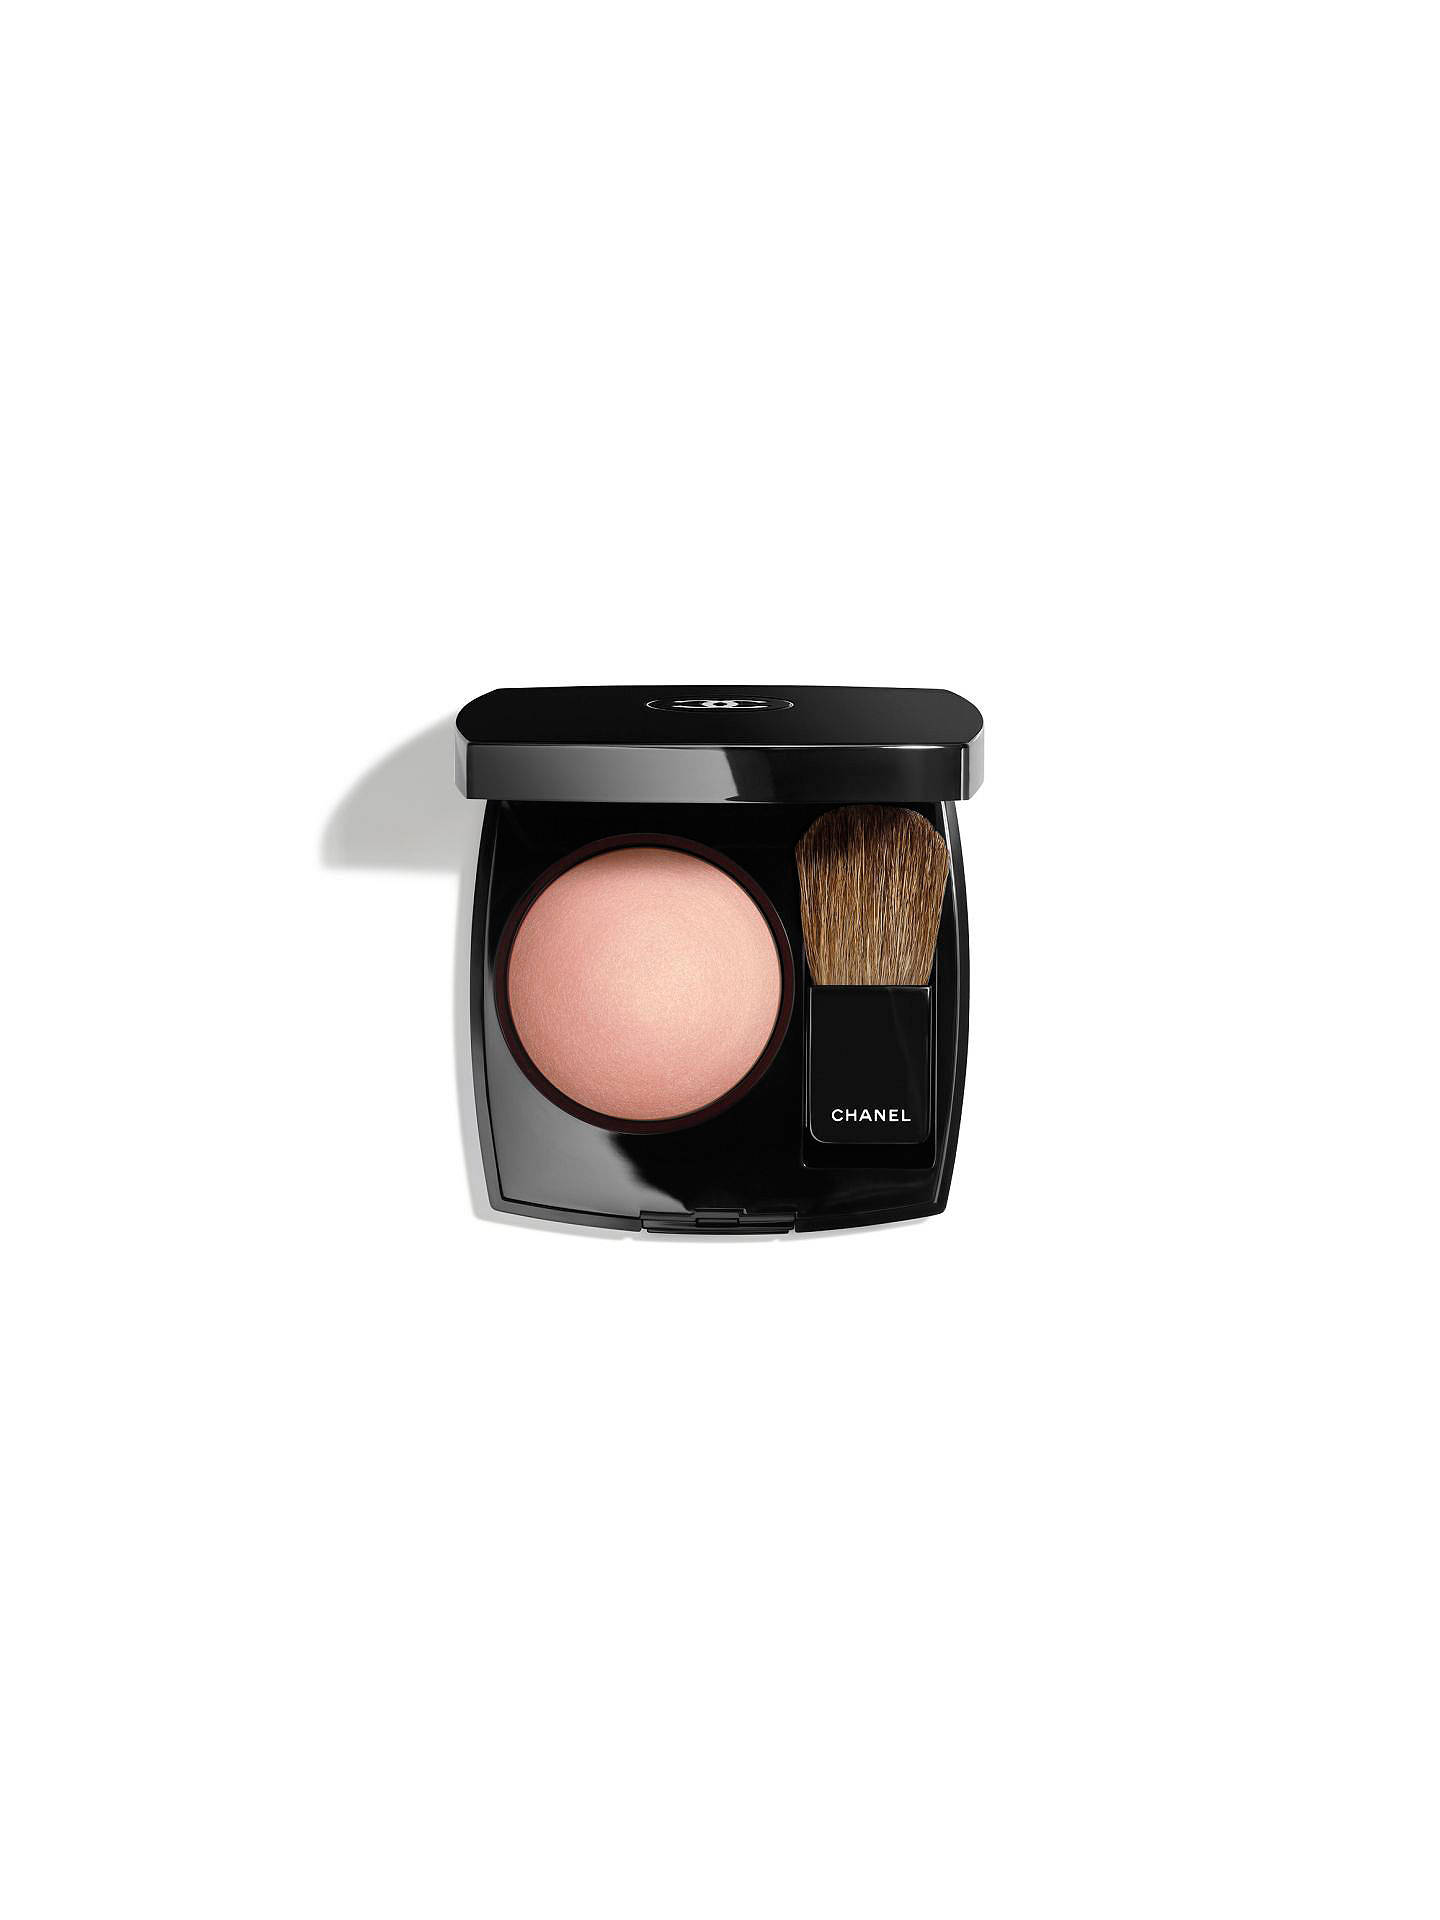 BuyCHANEL JOUES CONTRASTE Powder Blush, 15 Orchid Rose Online at johnlewis.com